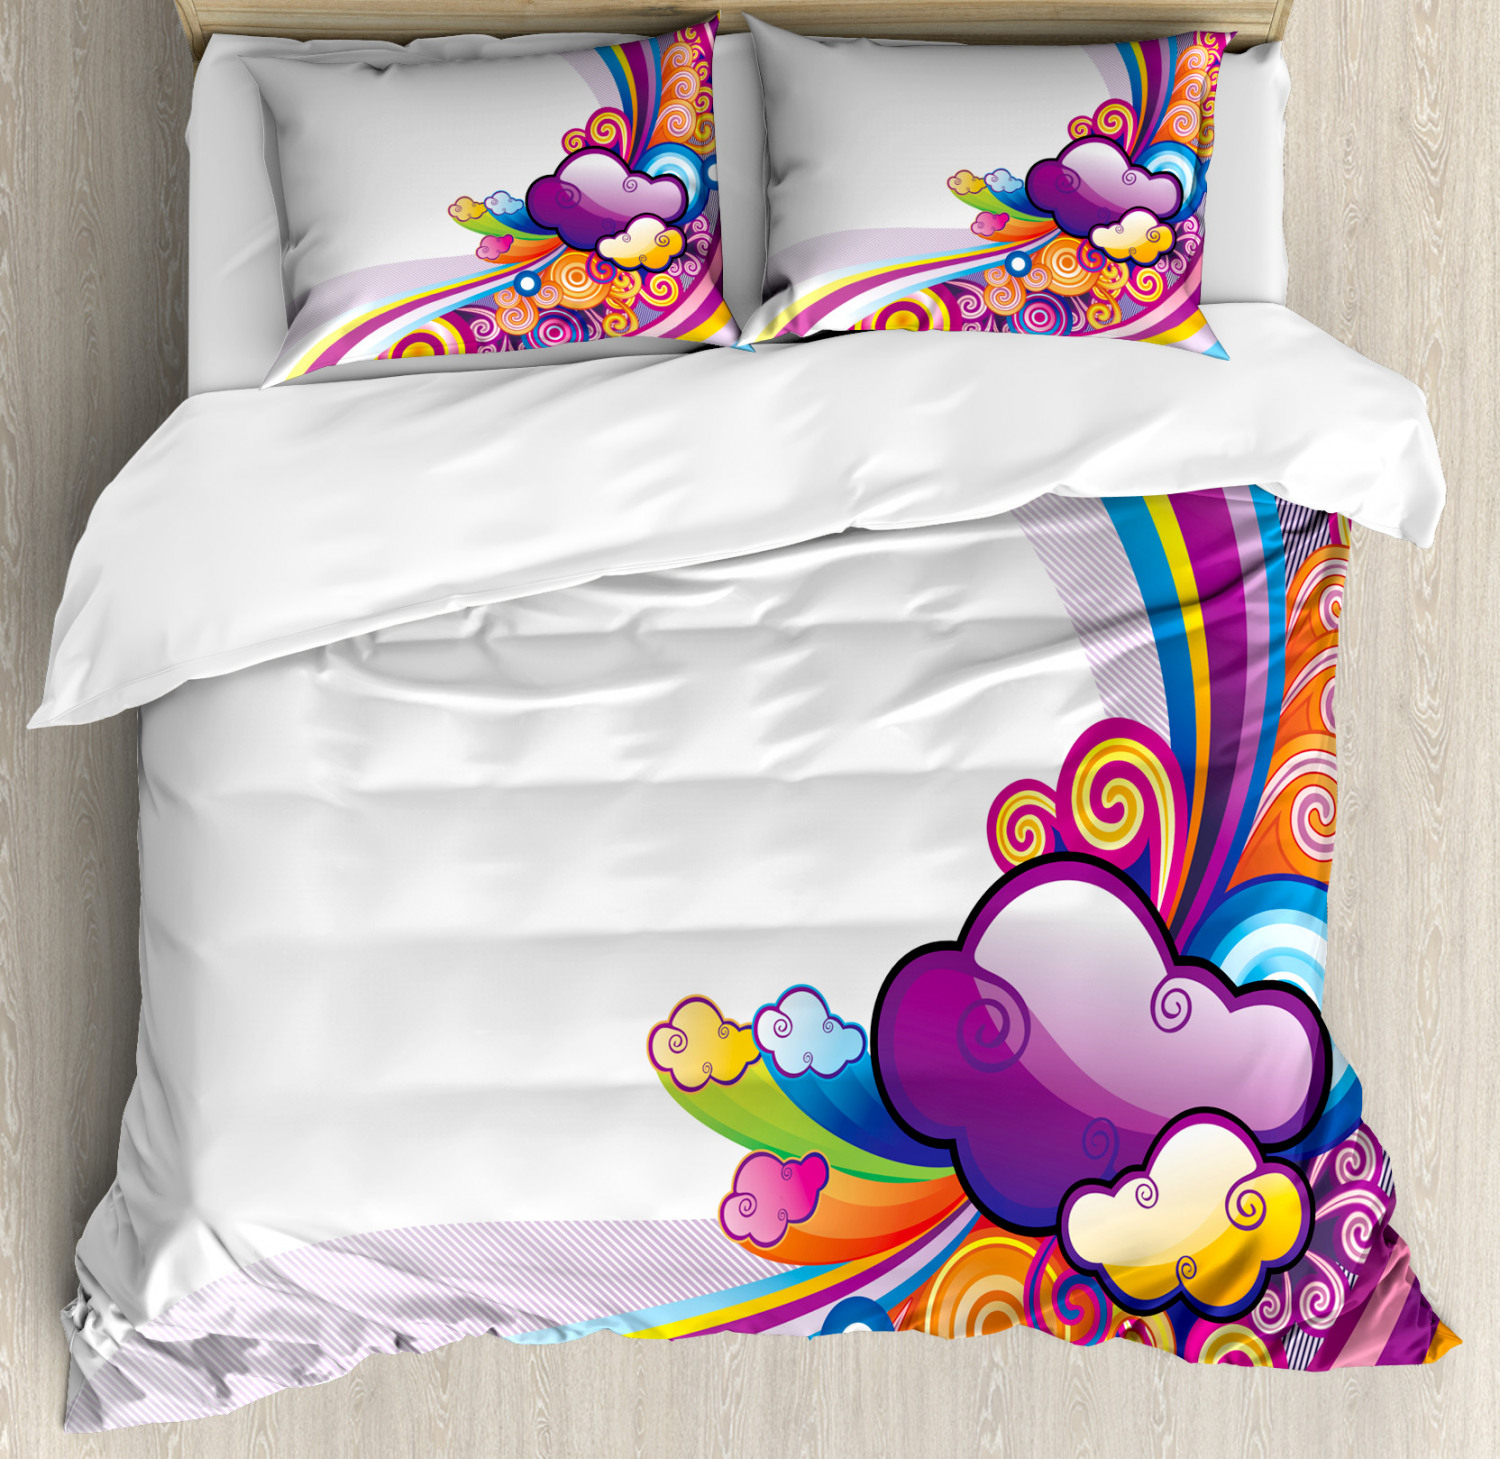 Cartoon Duvet Cover Set with Pillow Shams Rainbow colord Clouds Print